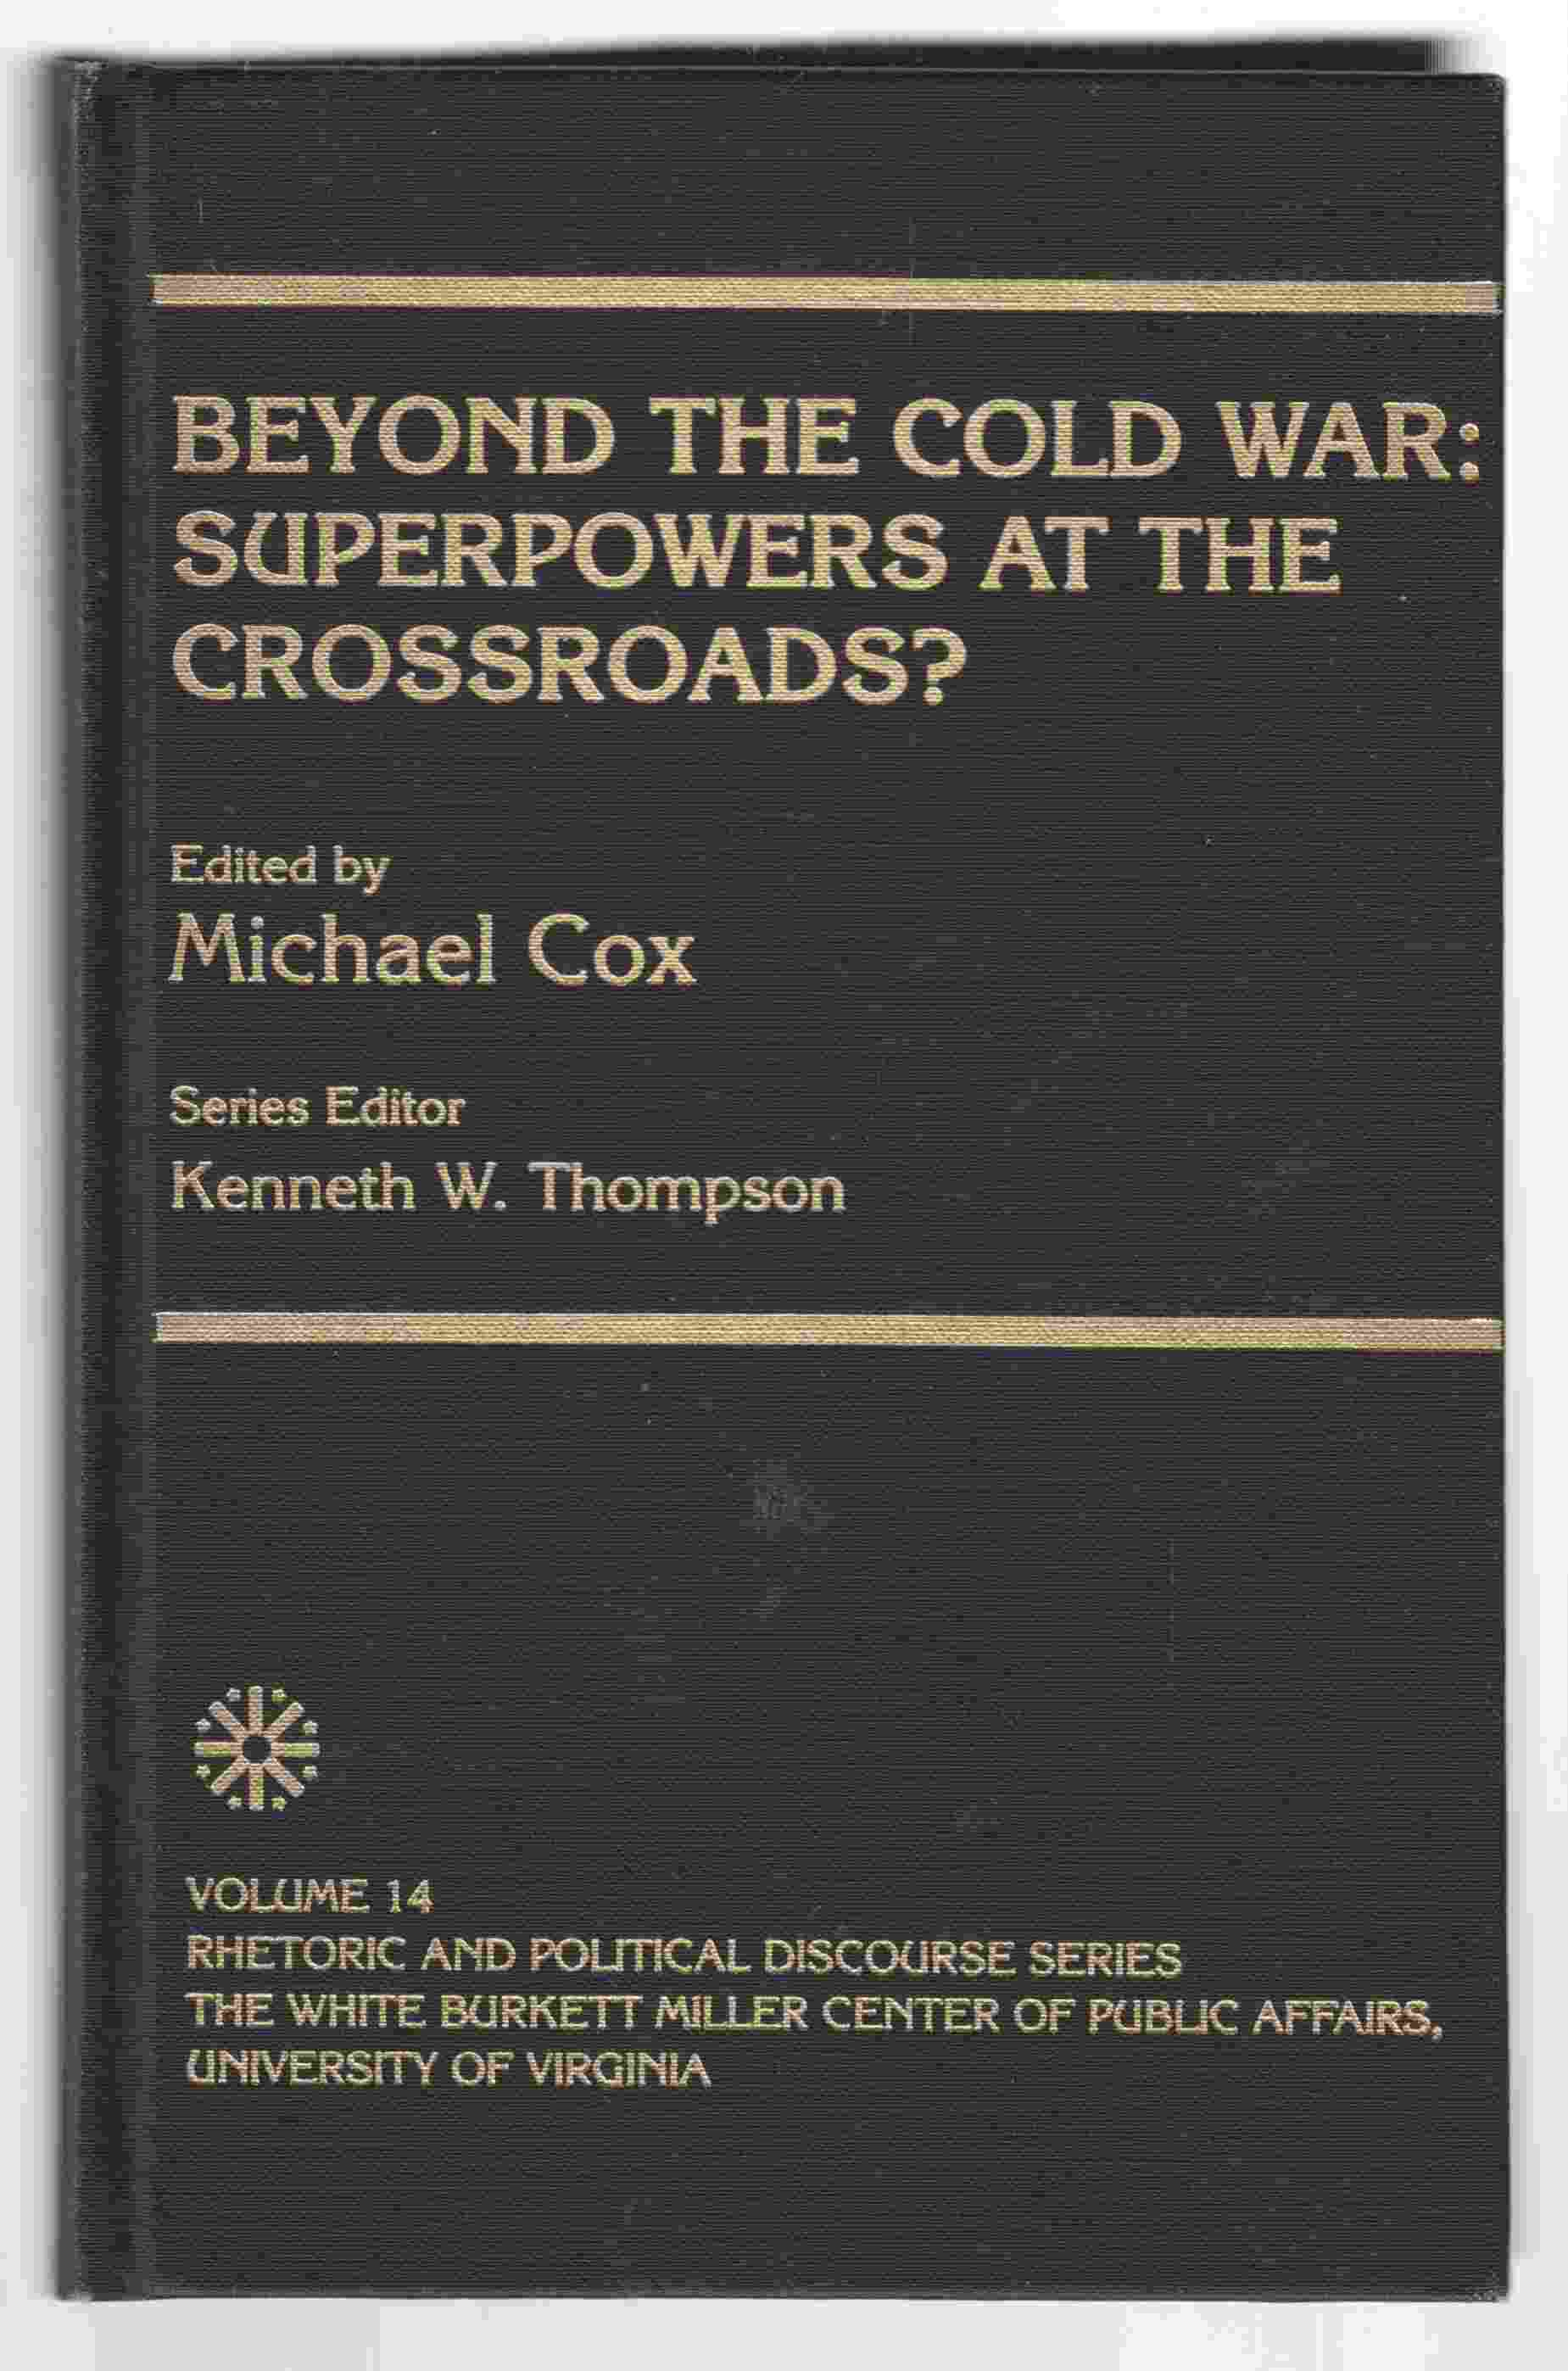 Image for Beyond the Cold War Superpowers At the Crosssroads?